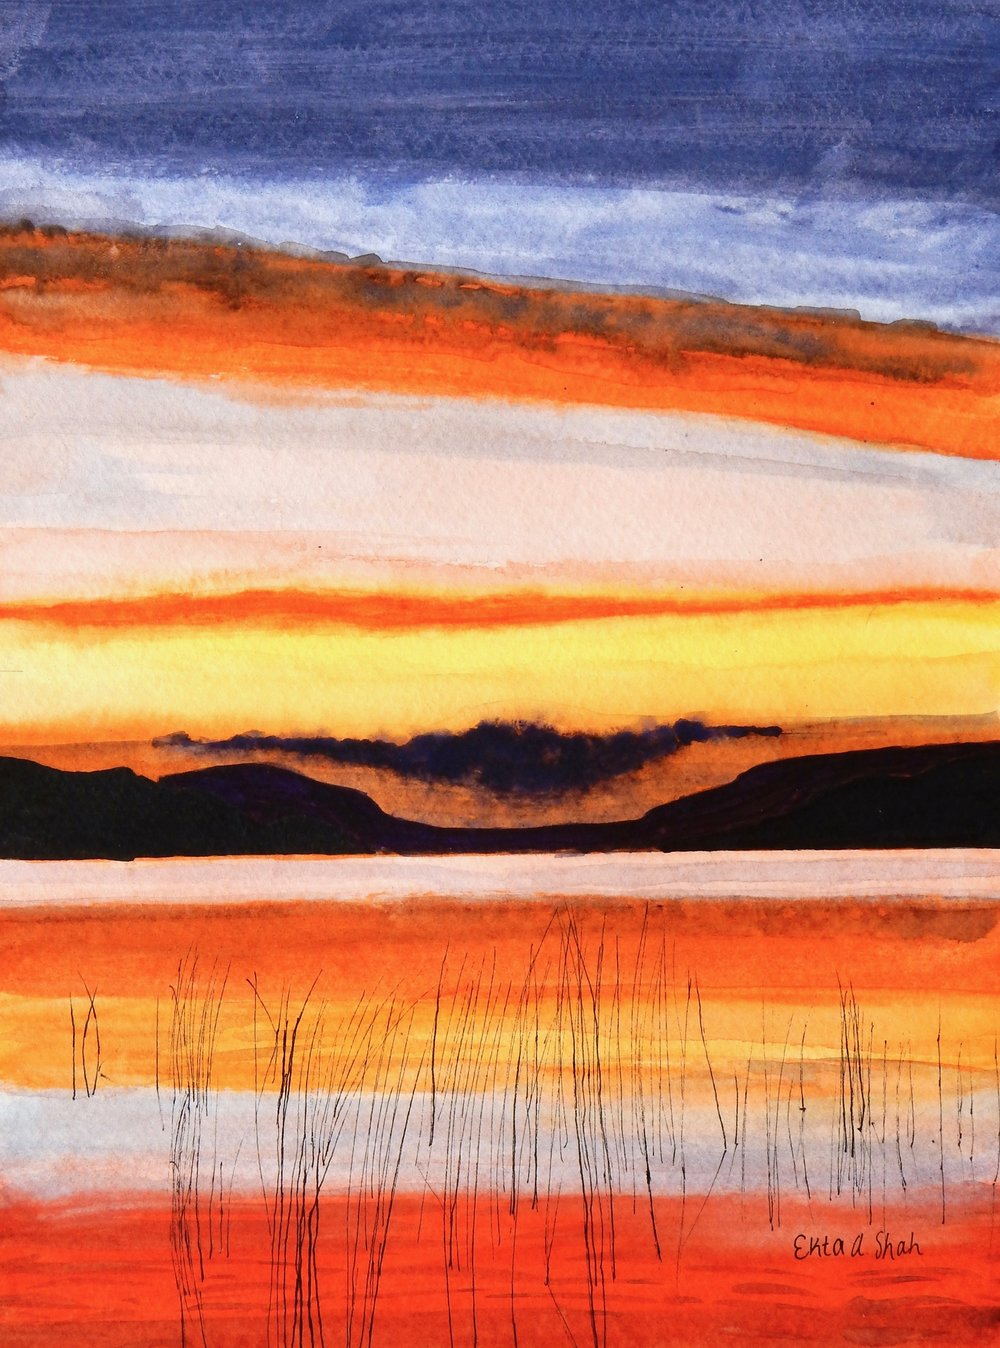 Ekta Shah.11th grade.watercolor.The Calm Before the Storm Sunset